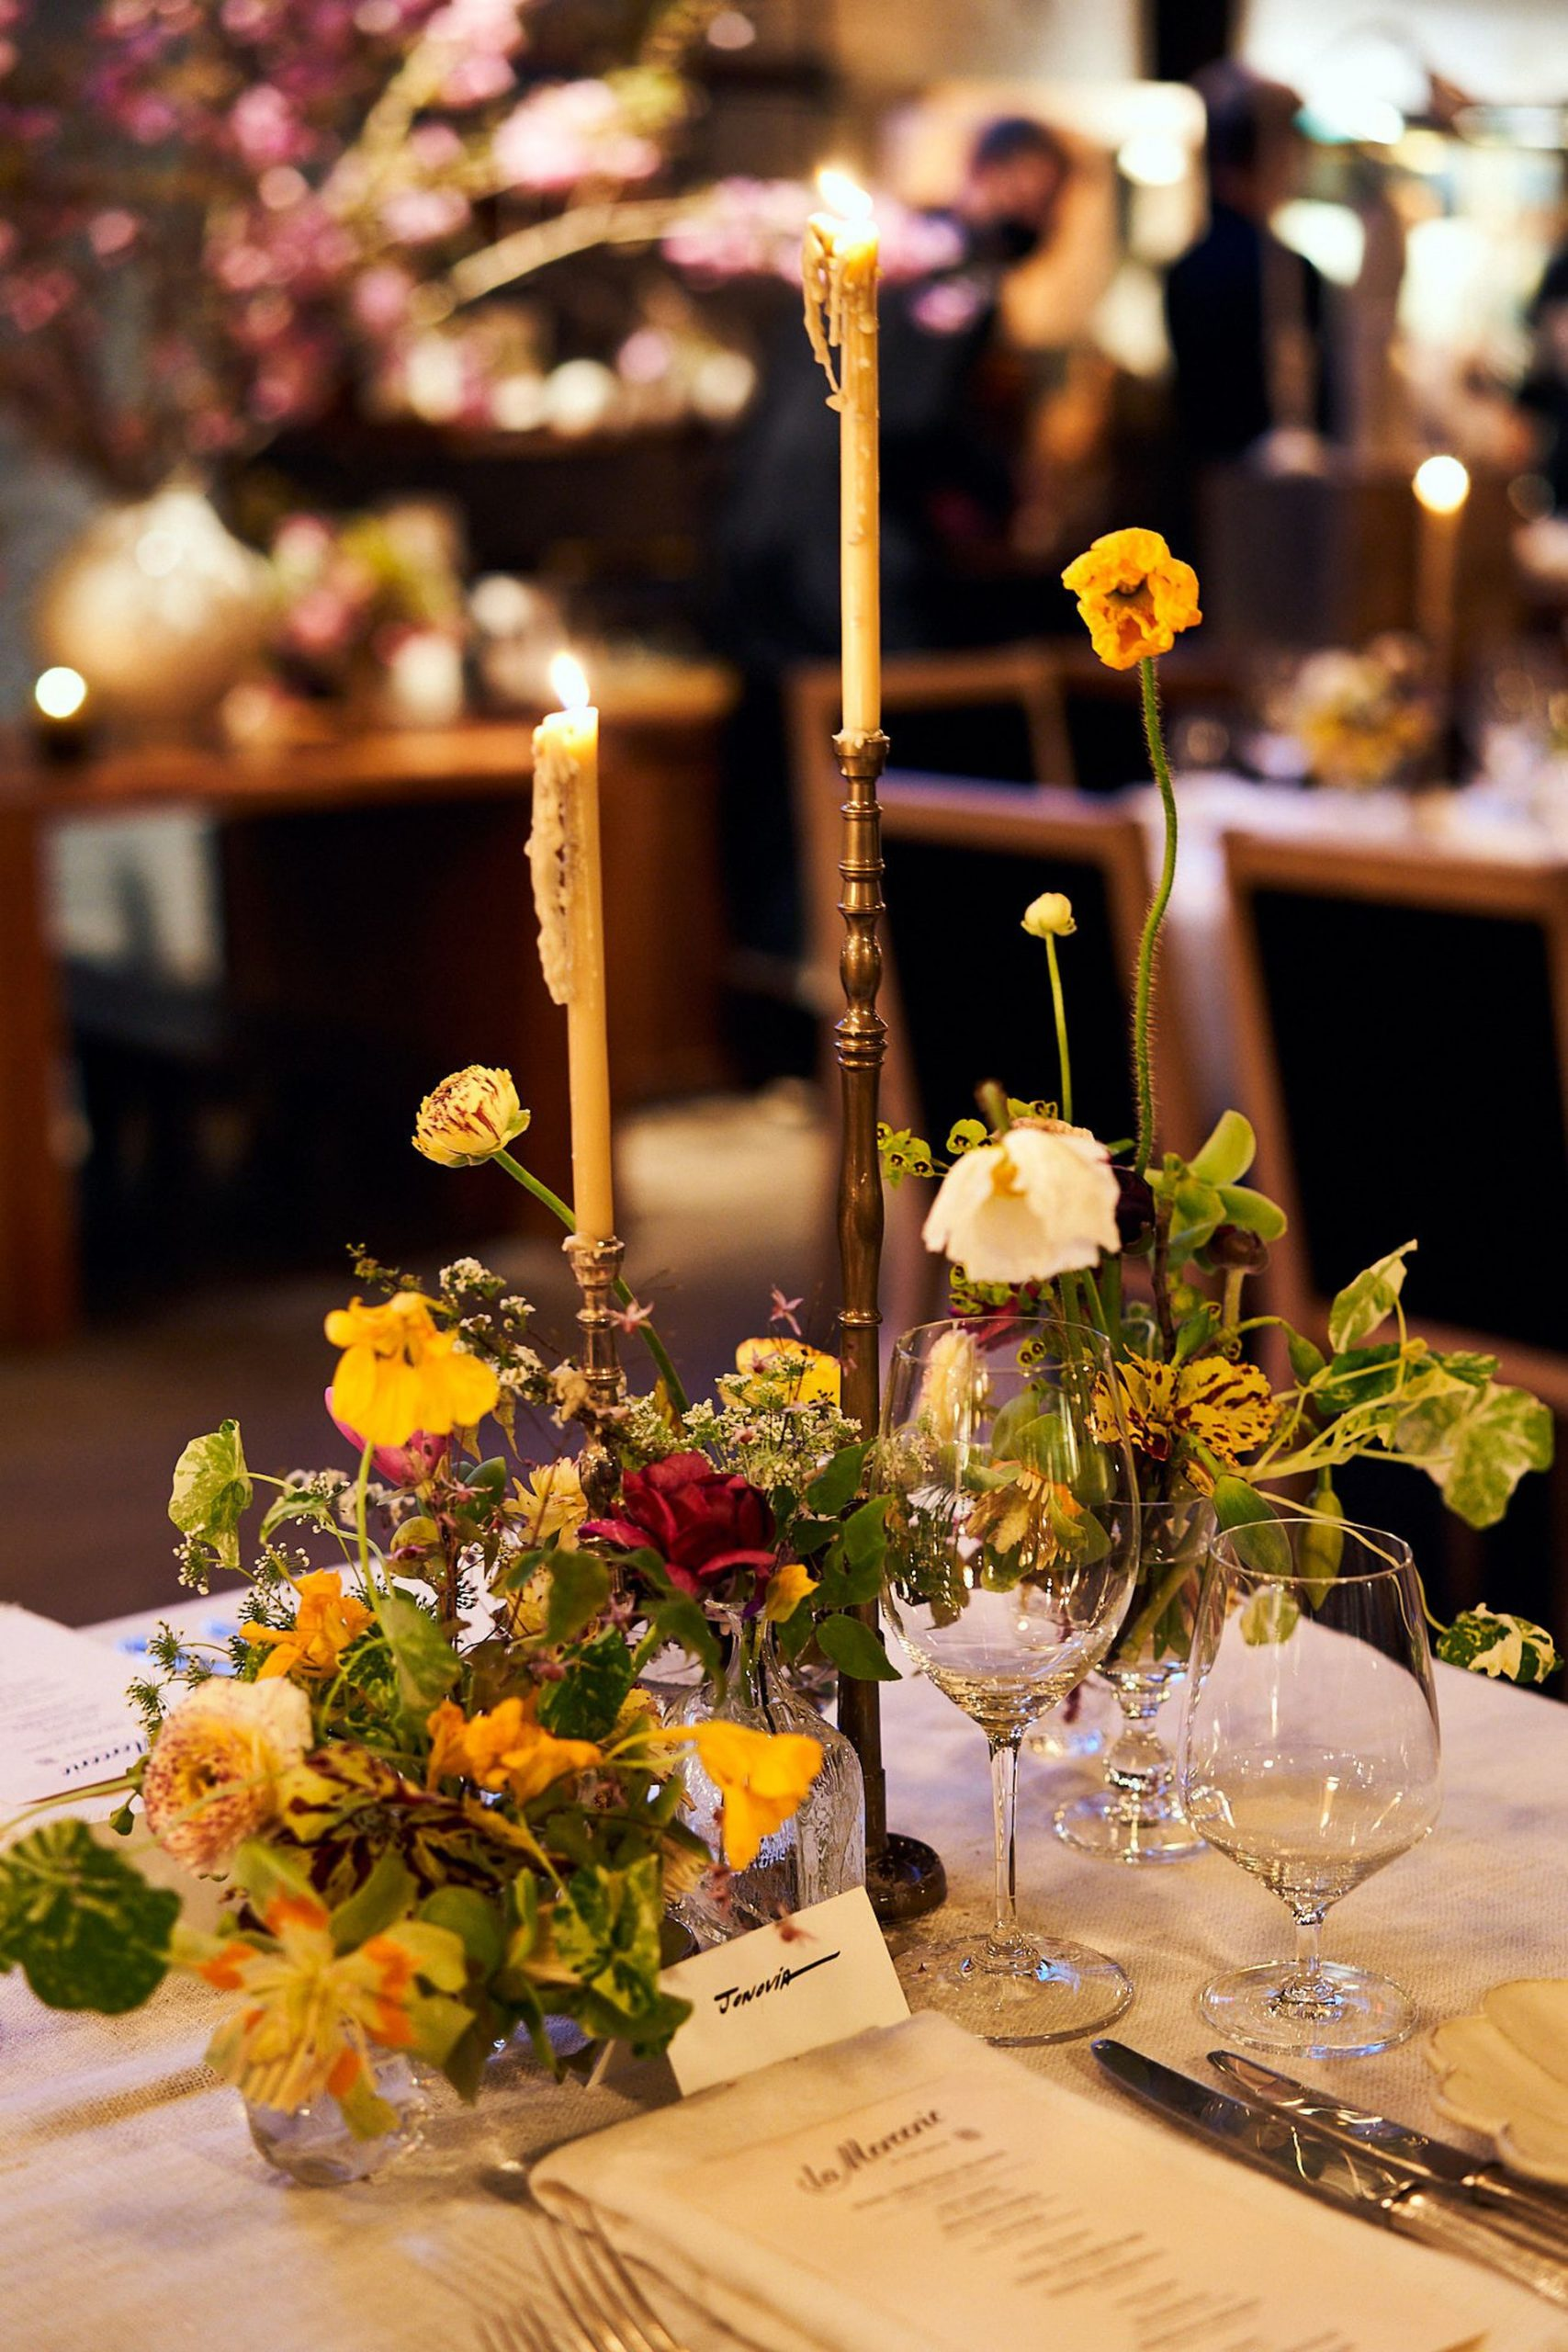 Wild baroque flower arrangement with tall lit candles on a white tablecloth table